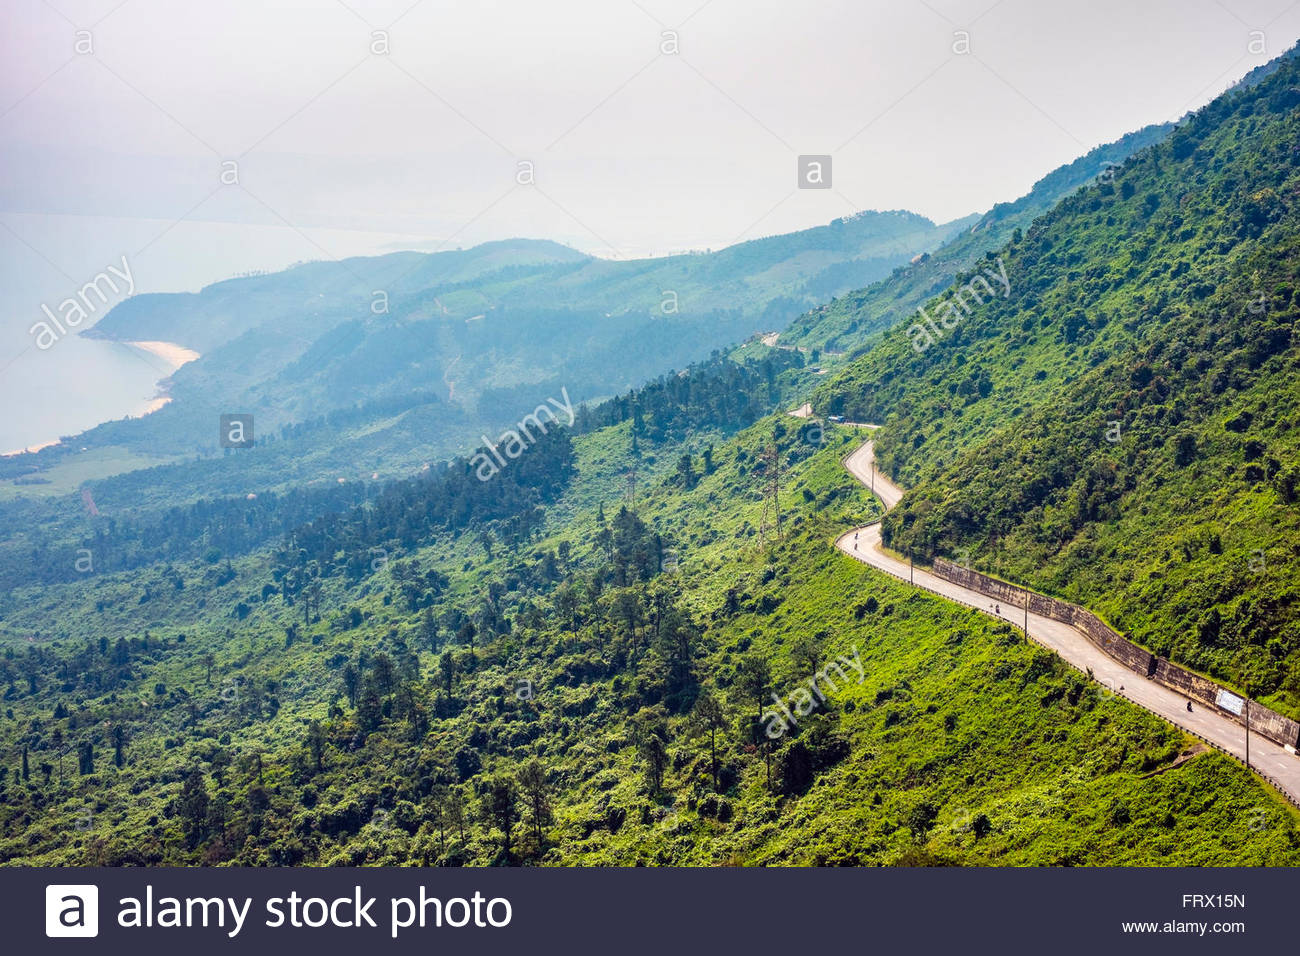 Winding road through Hai Van Pass, Da Nang, Vietnam - Stock Image